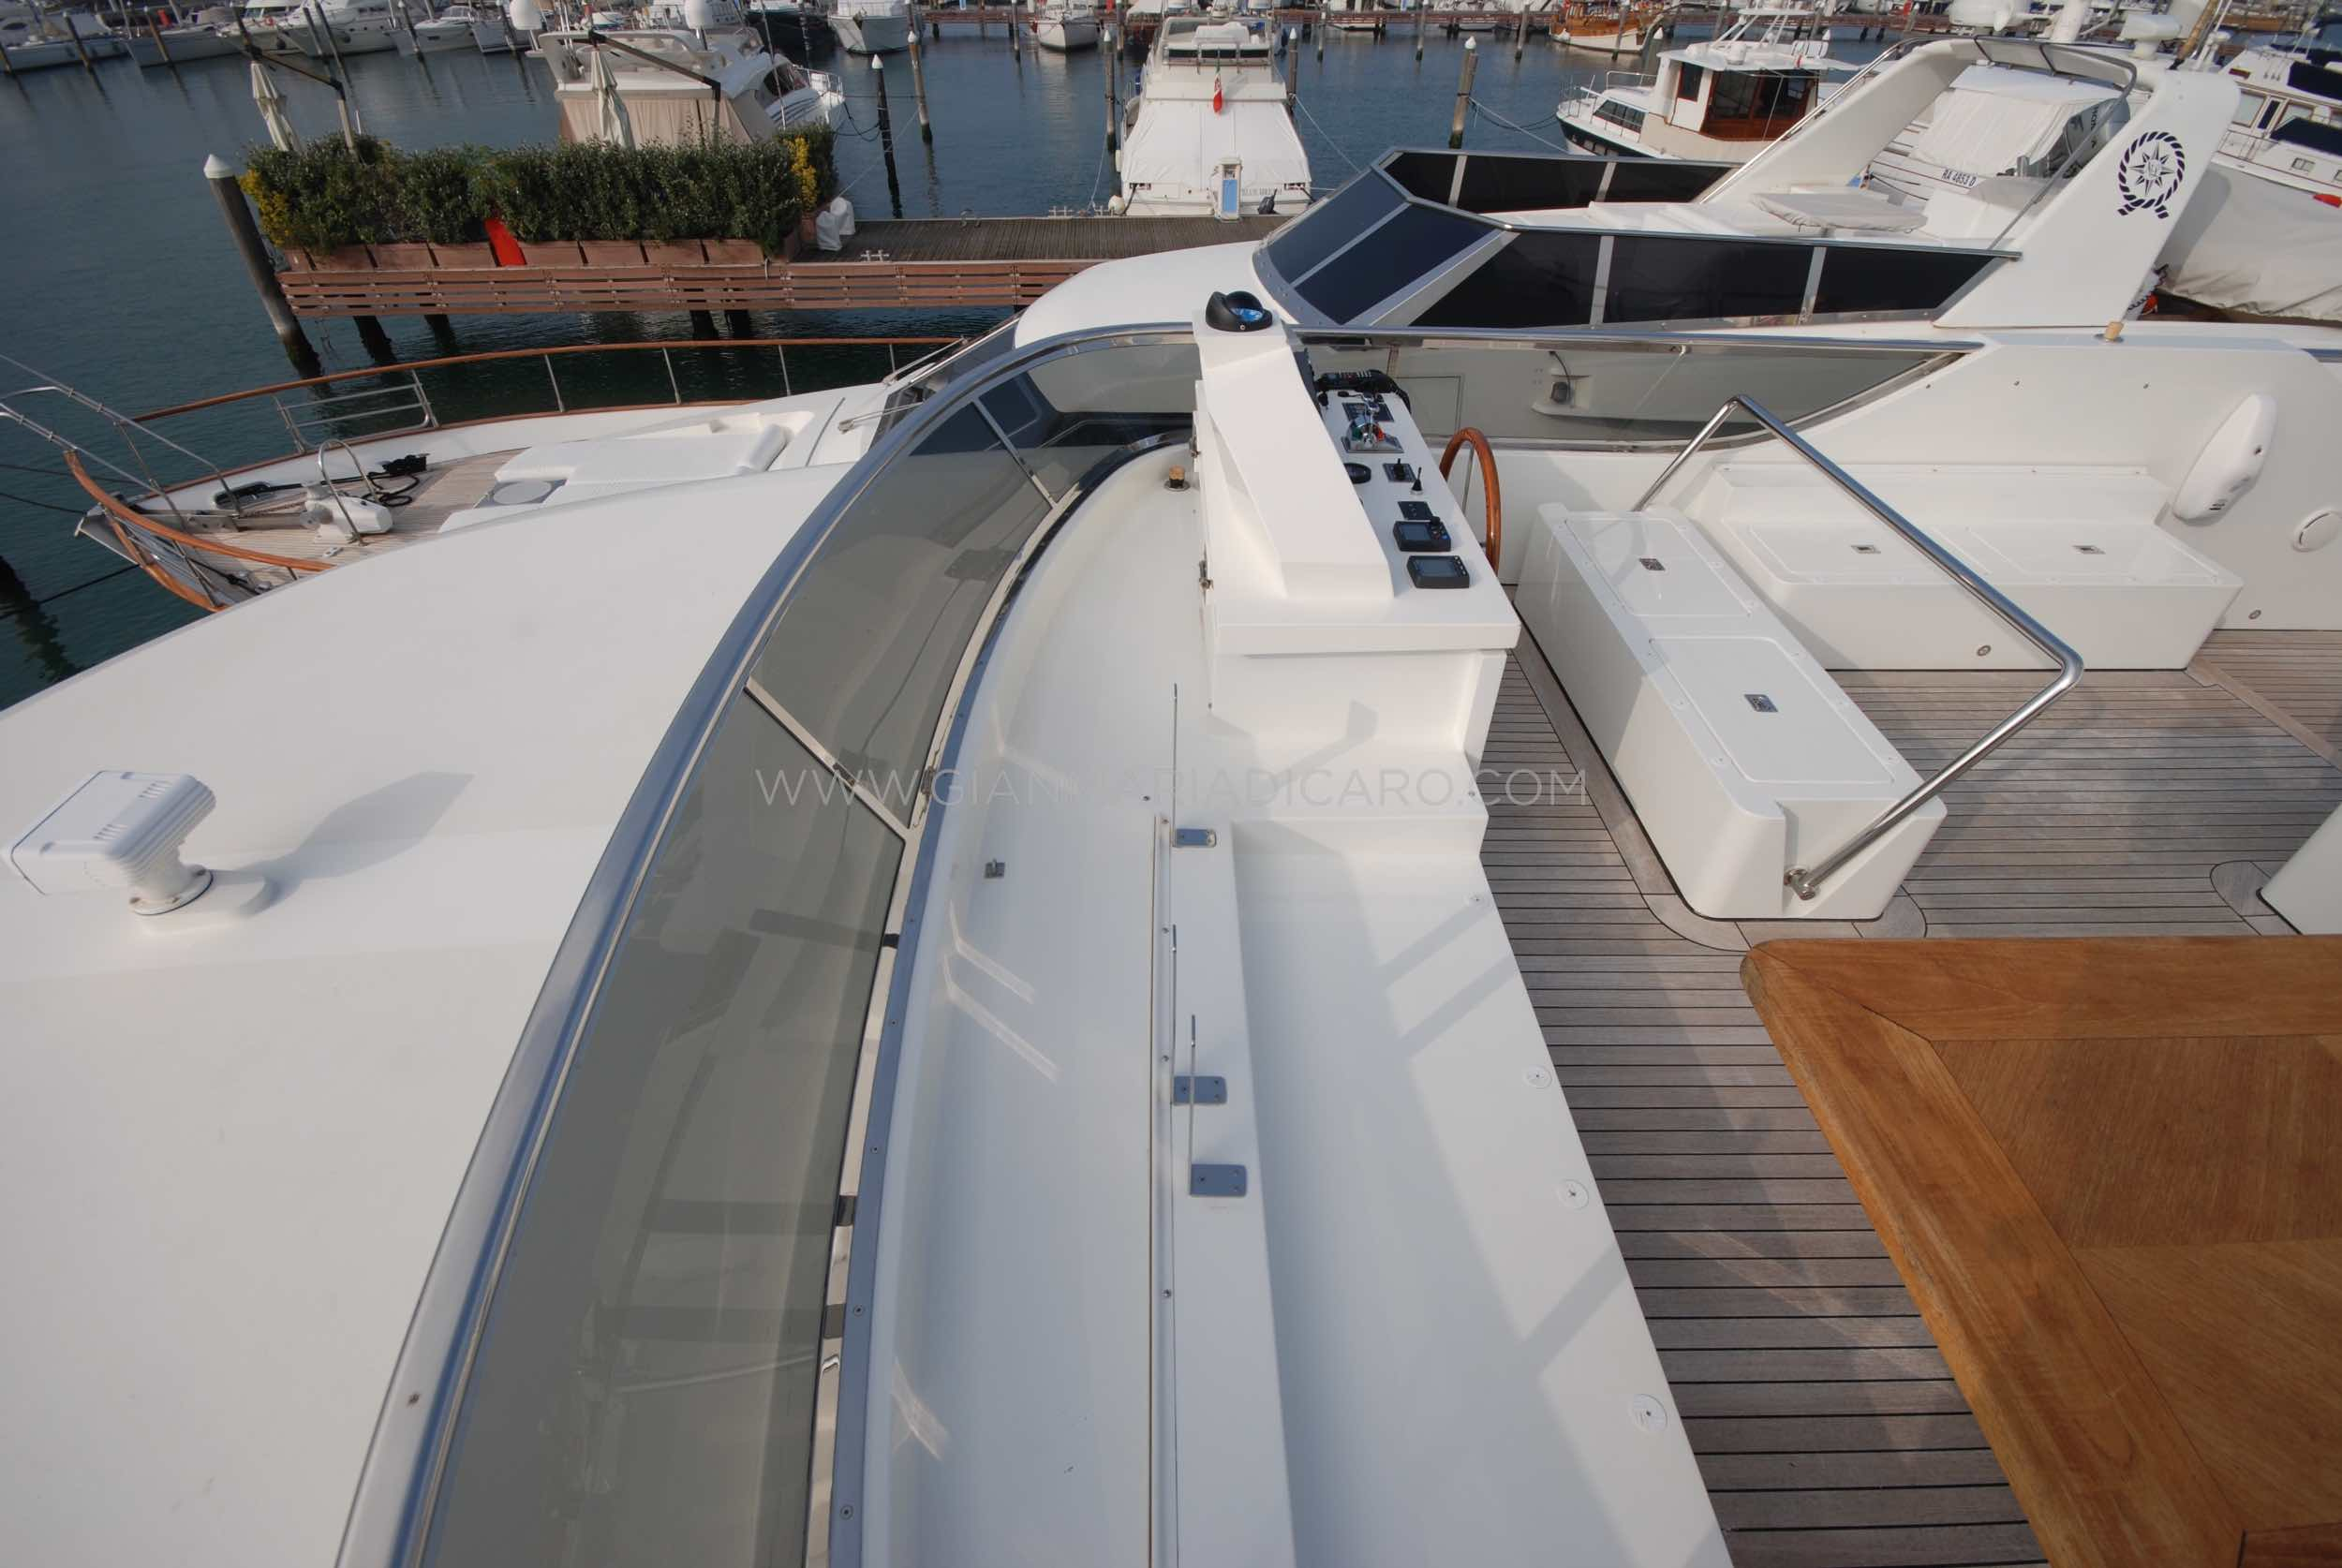 emys-yacht-22-unica-for-sale-104.jpg